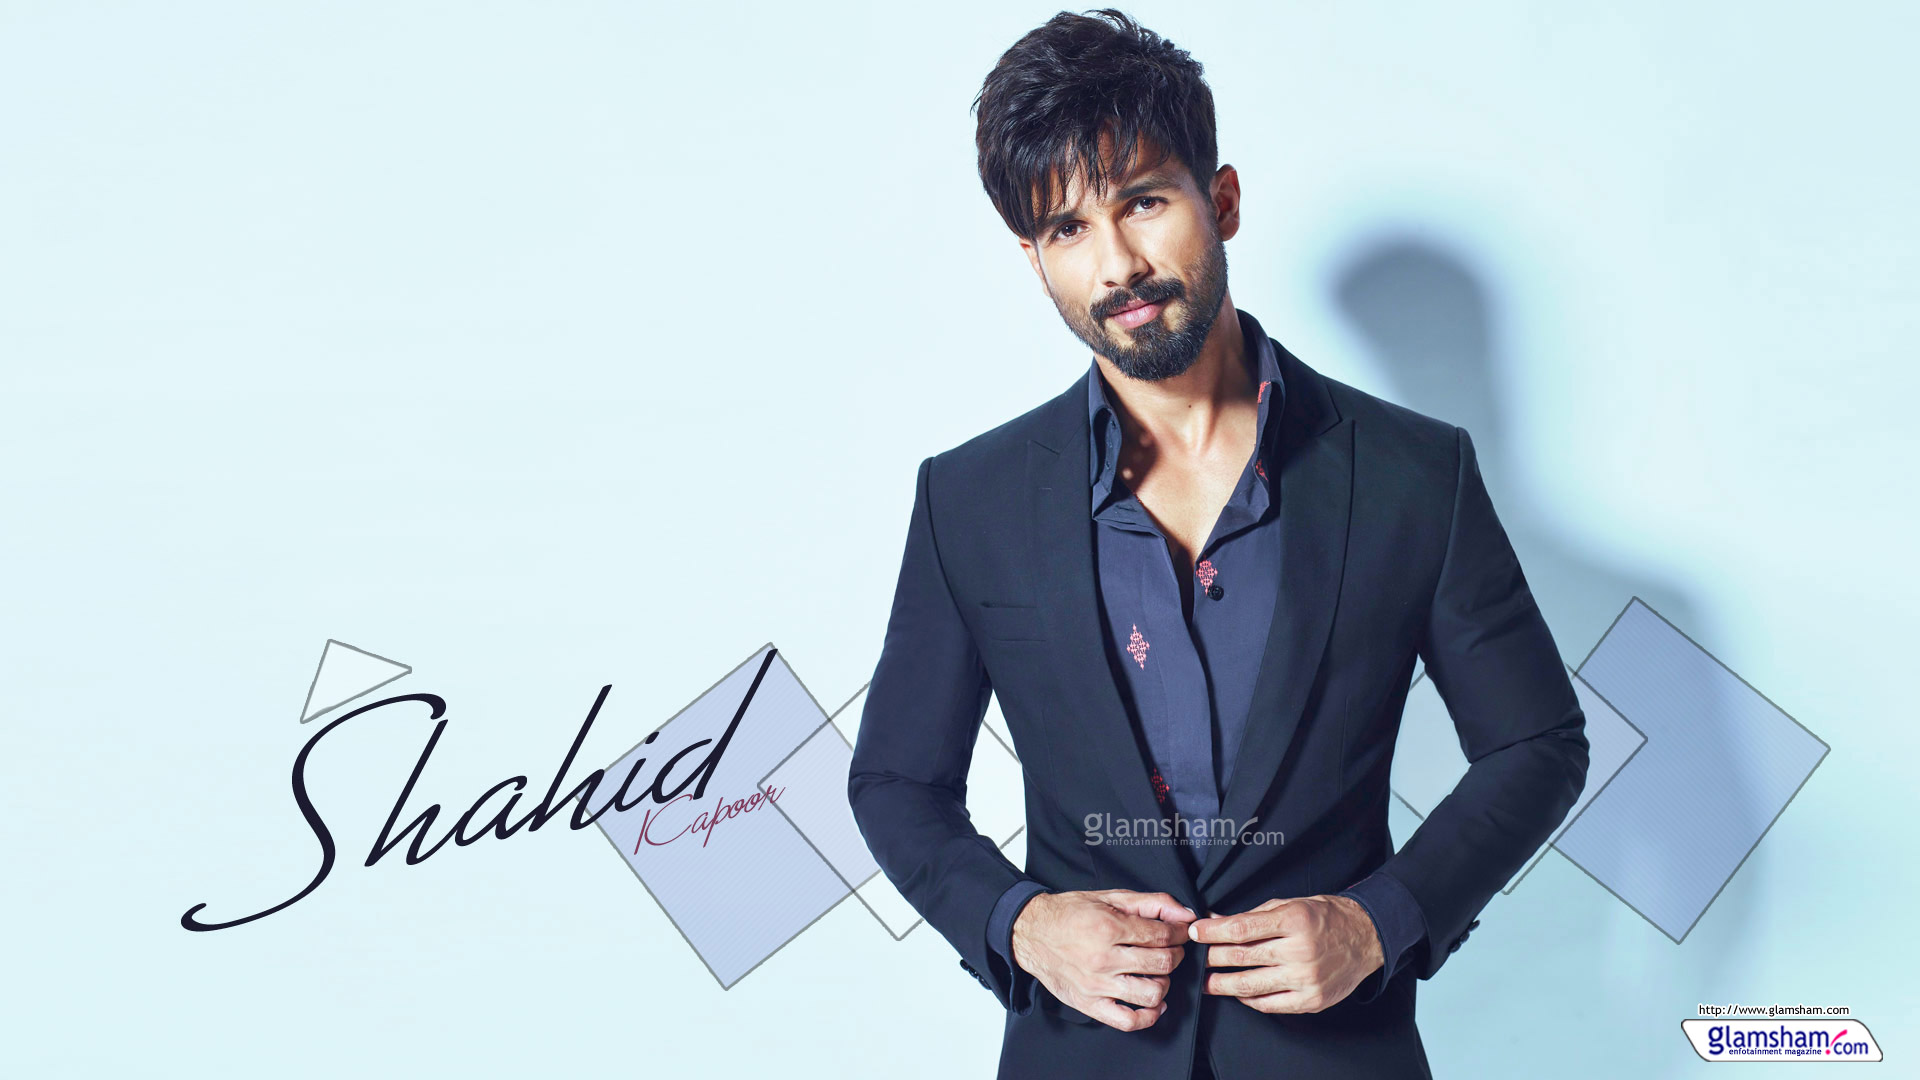 shahid kapoor photos, images, pics & hd wallpapers download